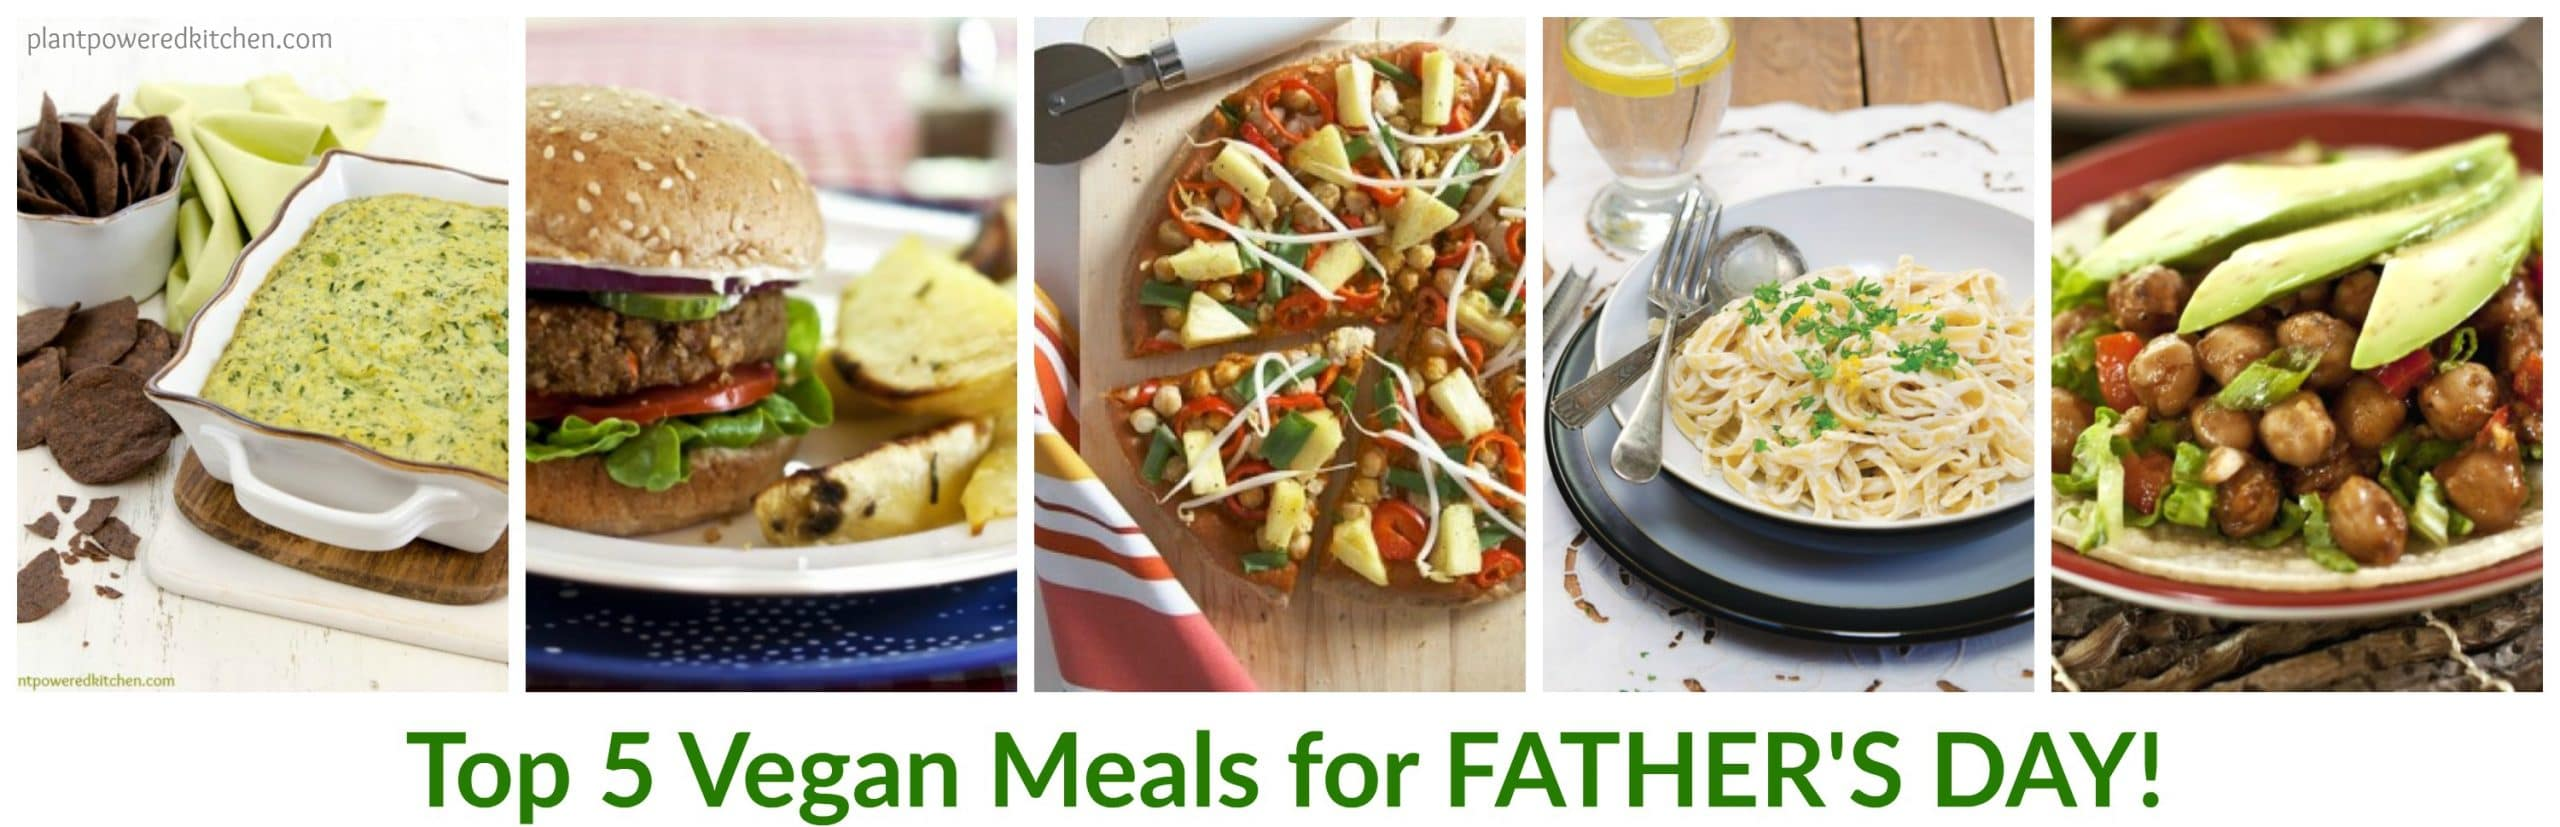 Top 5 Savory Vegan Recipes for Father's Day #vegan #wfpb #fathersday plantpoweredkitchen.com